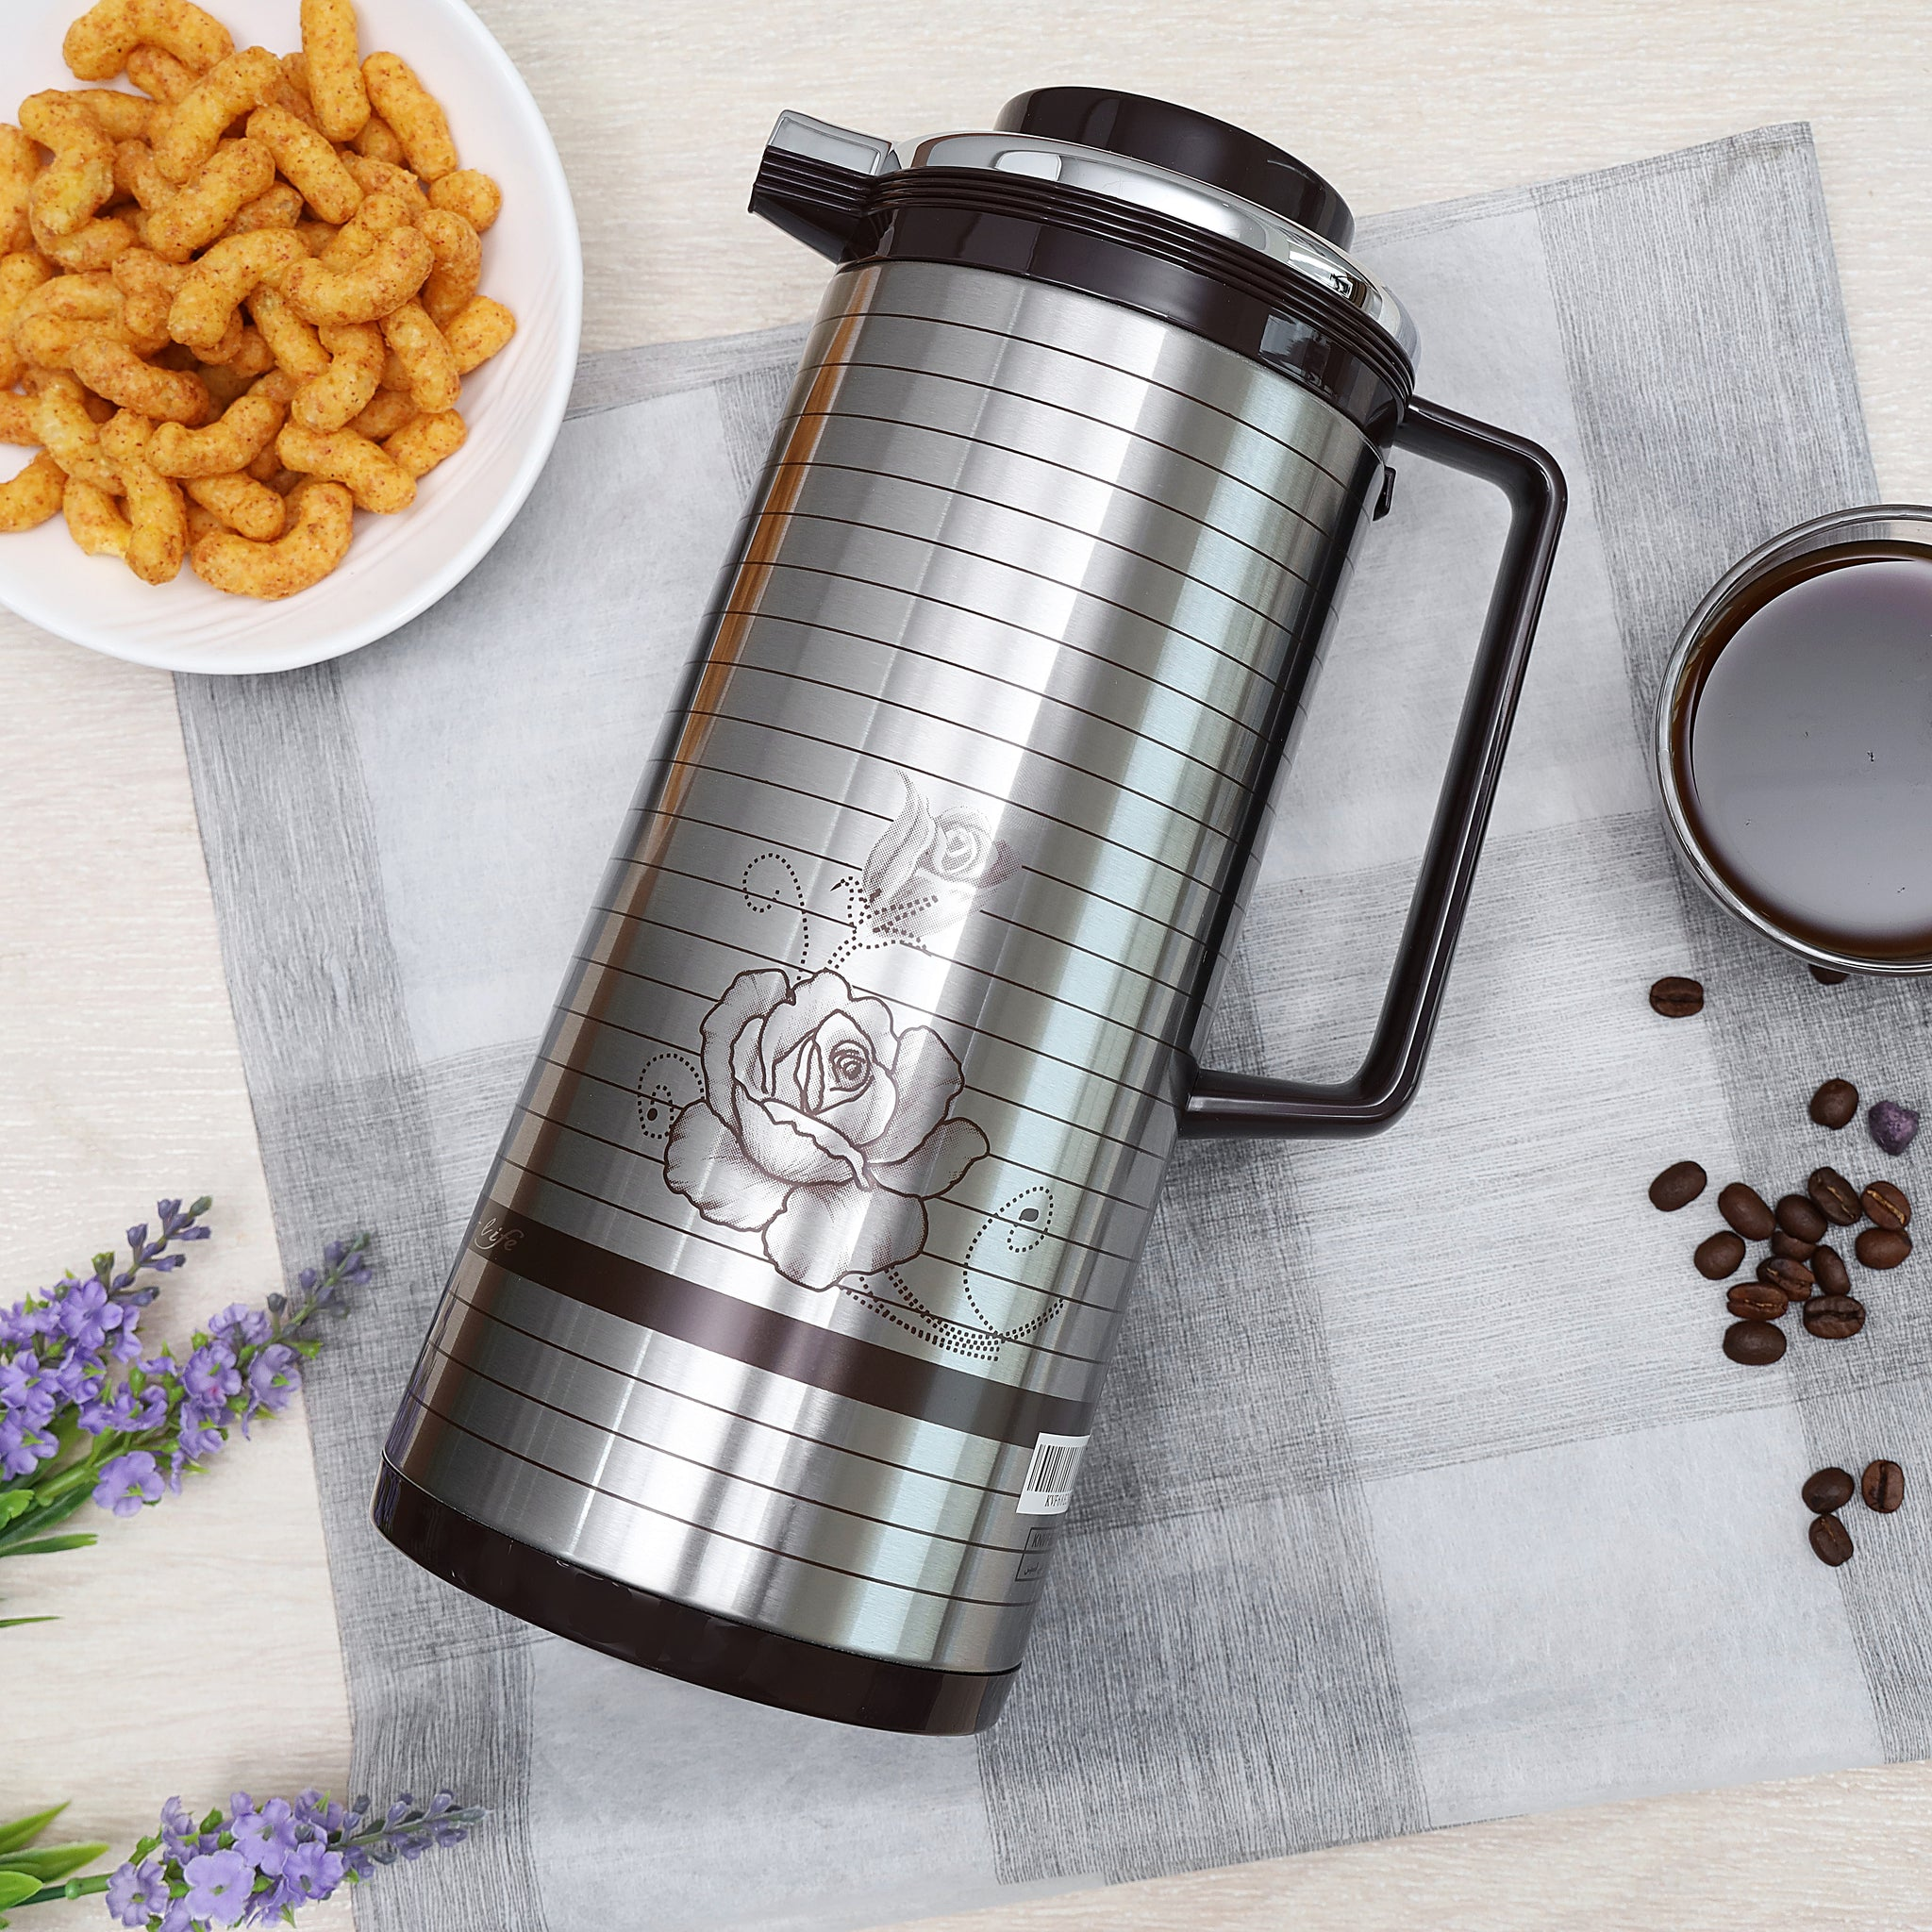 1.3 L Glass Vacuum Flask, Vacuum Flask - Insulated Flask Bottle - Thermos Flask with Double Wall Design -Jug Flask, Vacuum Thermo Airpot, Hot & Cool, Portable - Indoor Outdoor Use